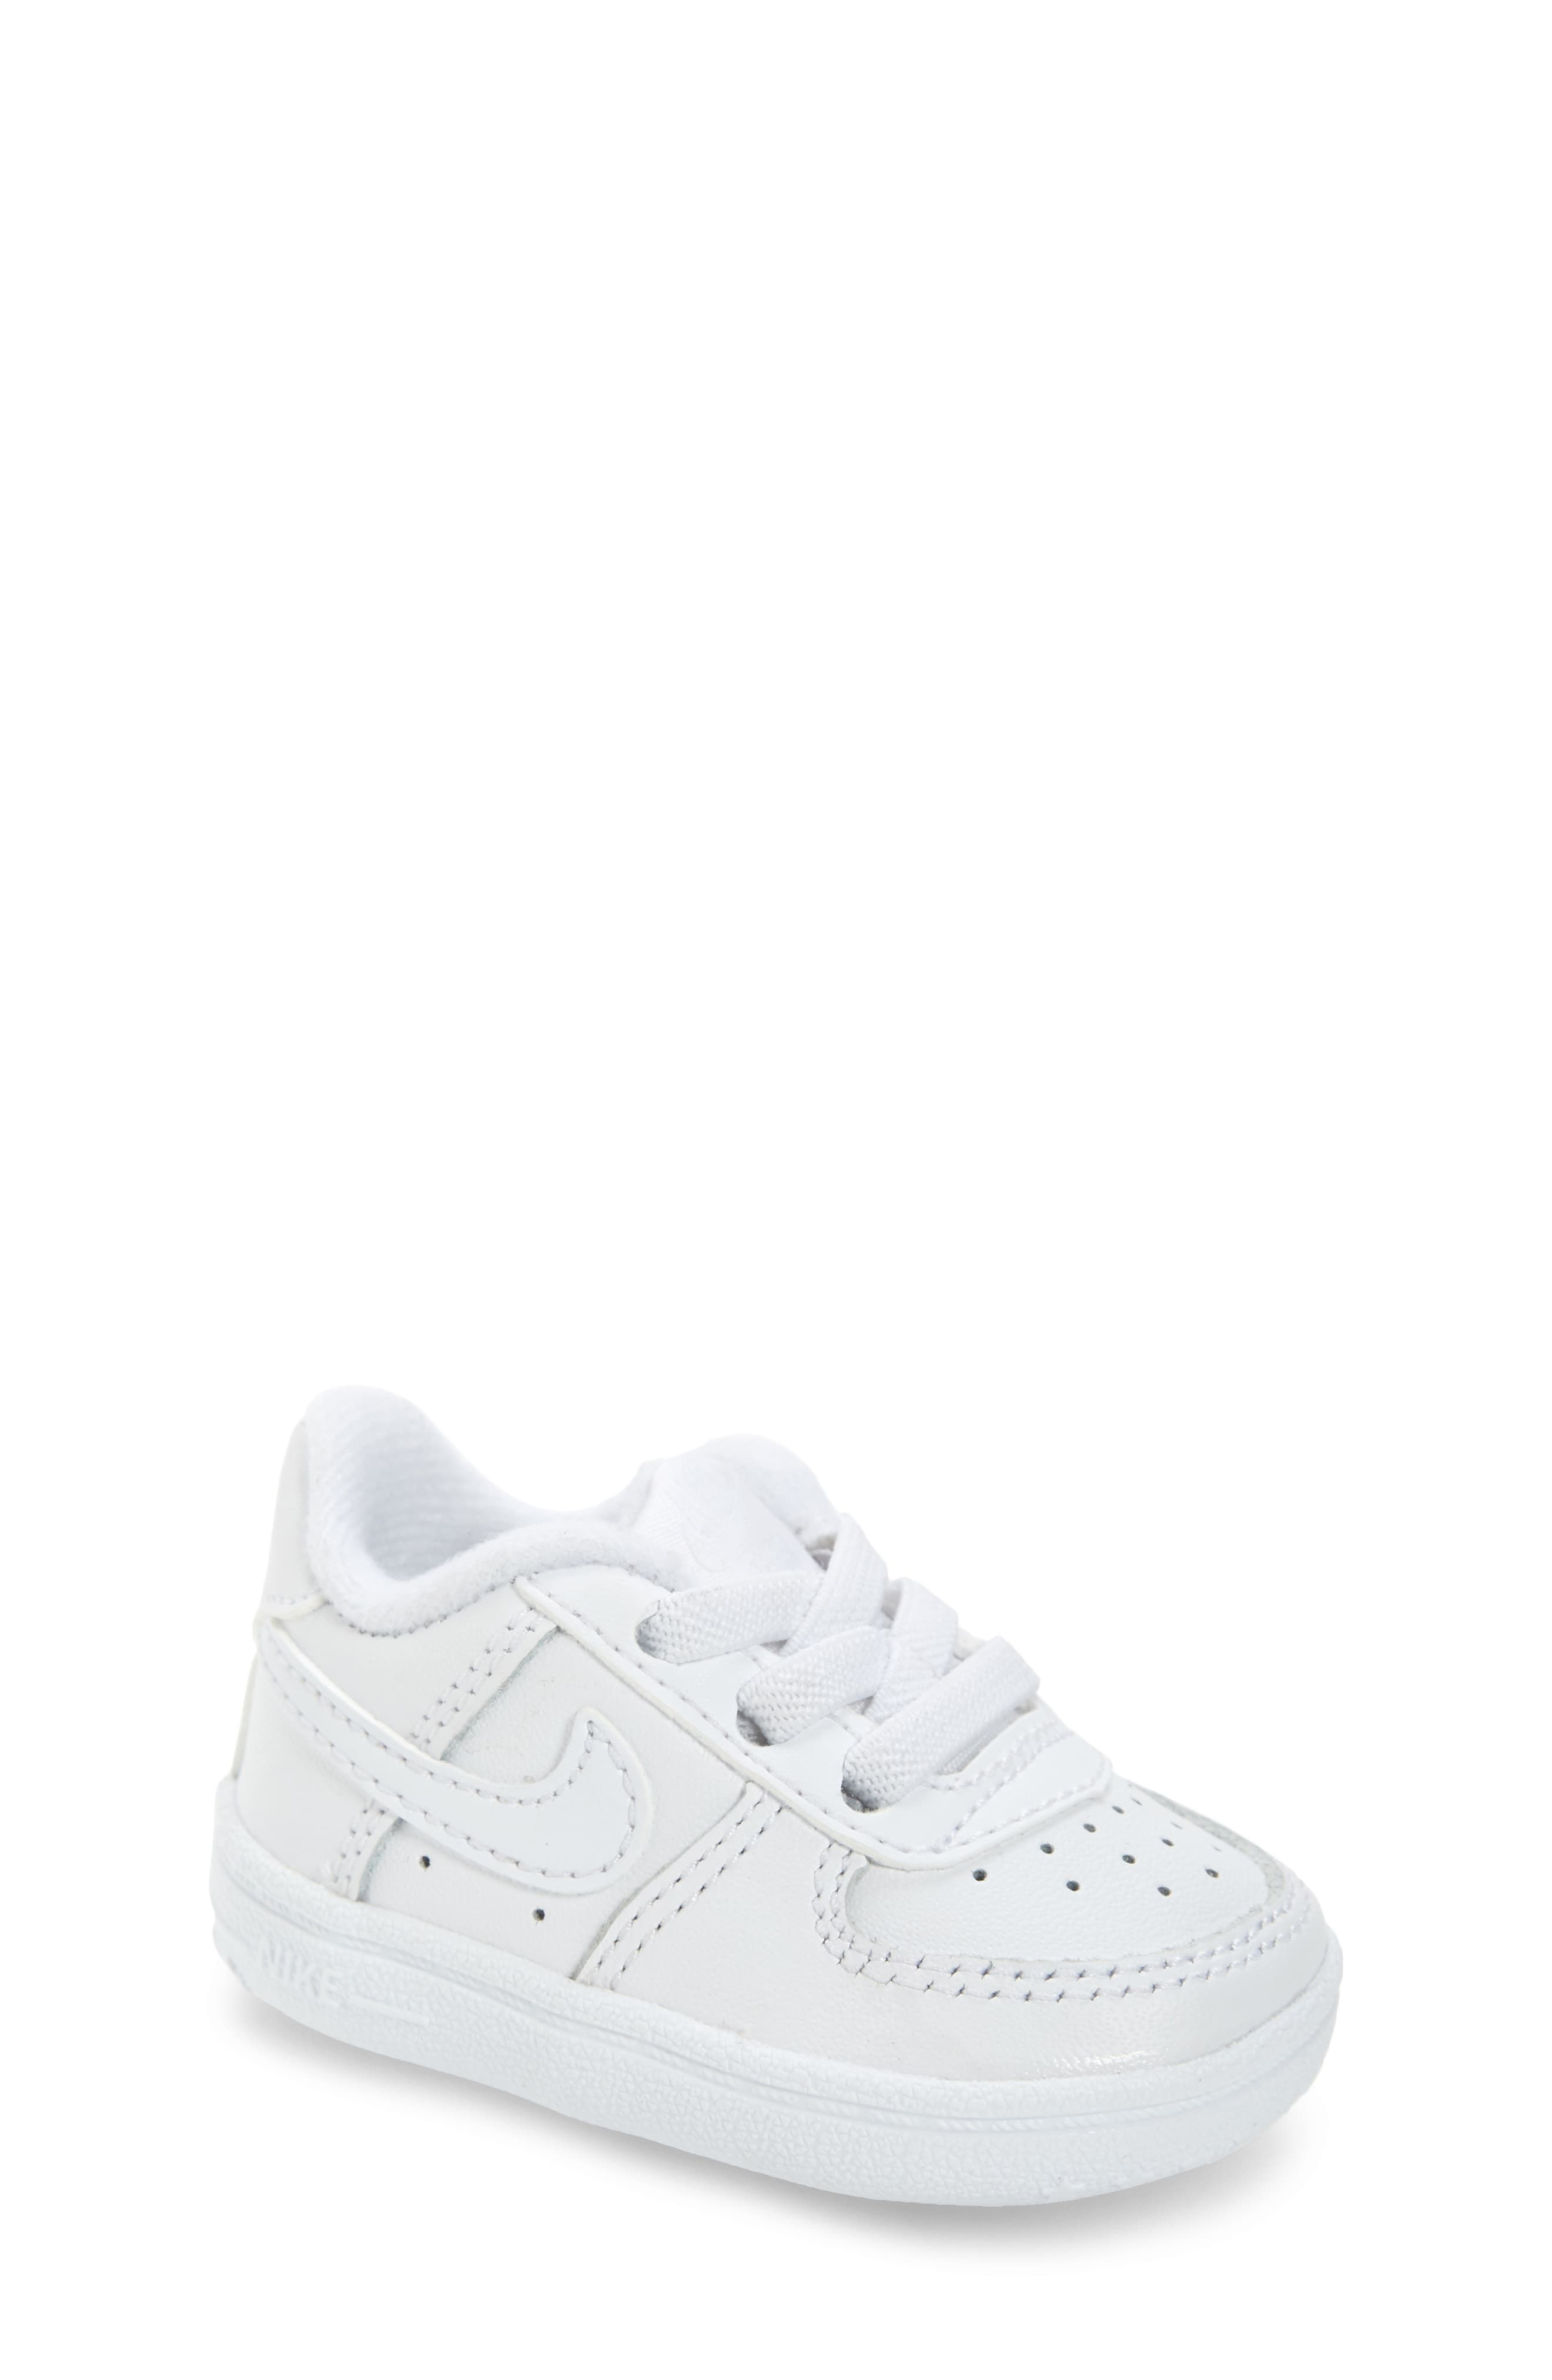 Infant Nike Air Force 1 Sneaker, Size 4